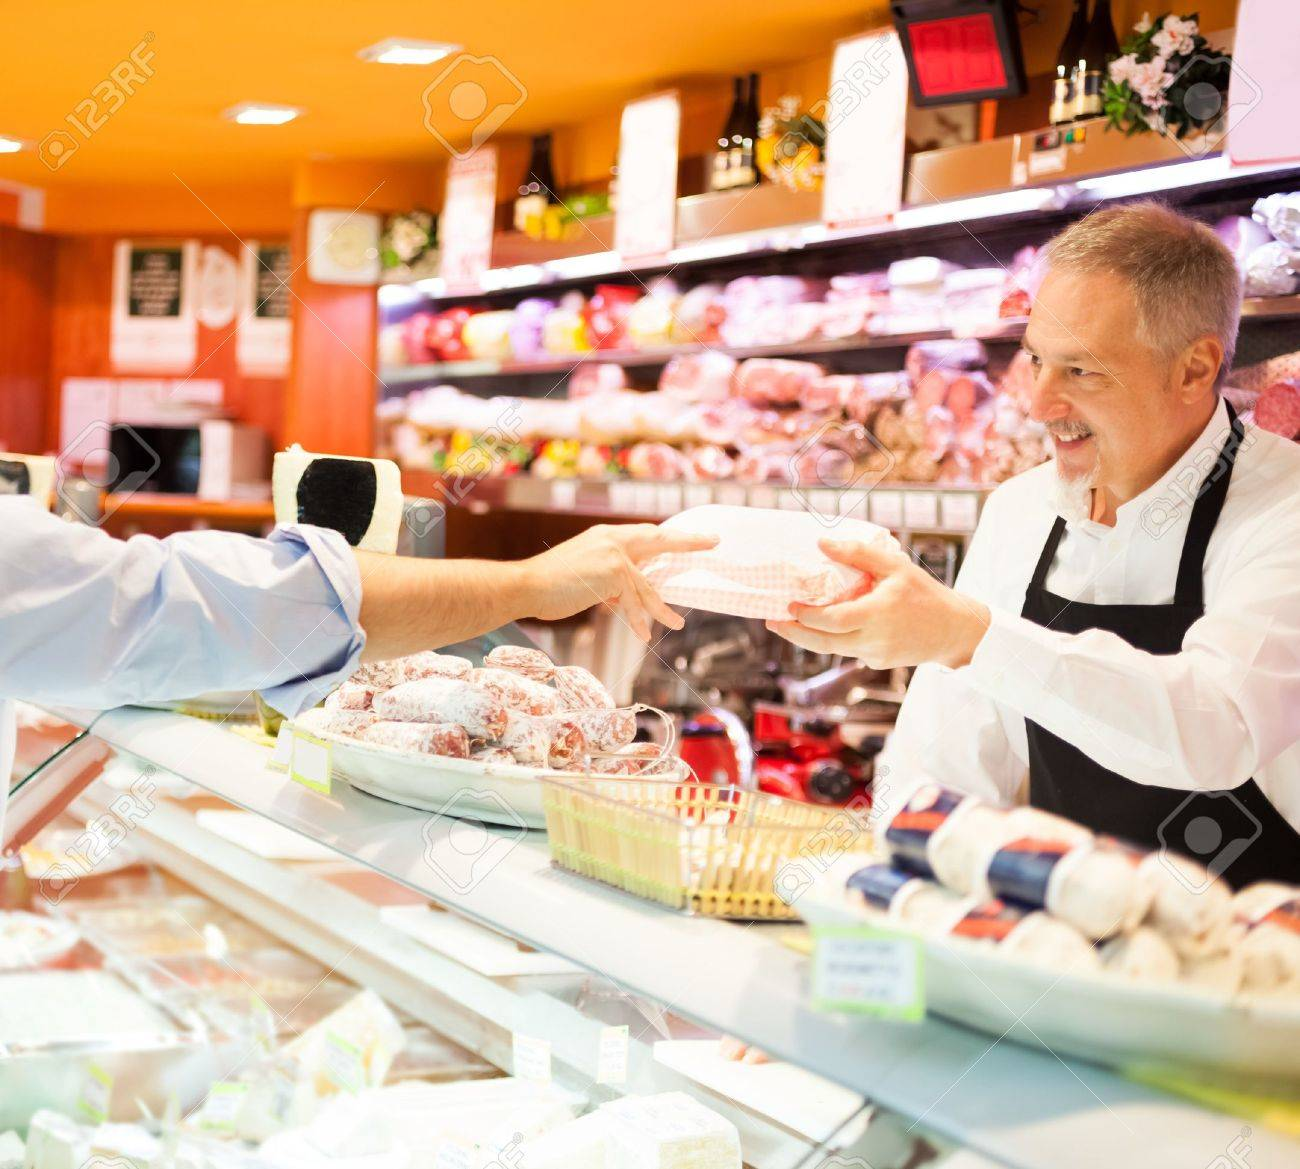 shopkeeper serving a customer in a grocery store stock photo shopkeeper serving a customer in a grocery store stock photo 16732854